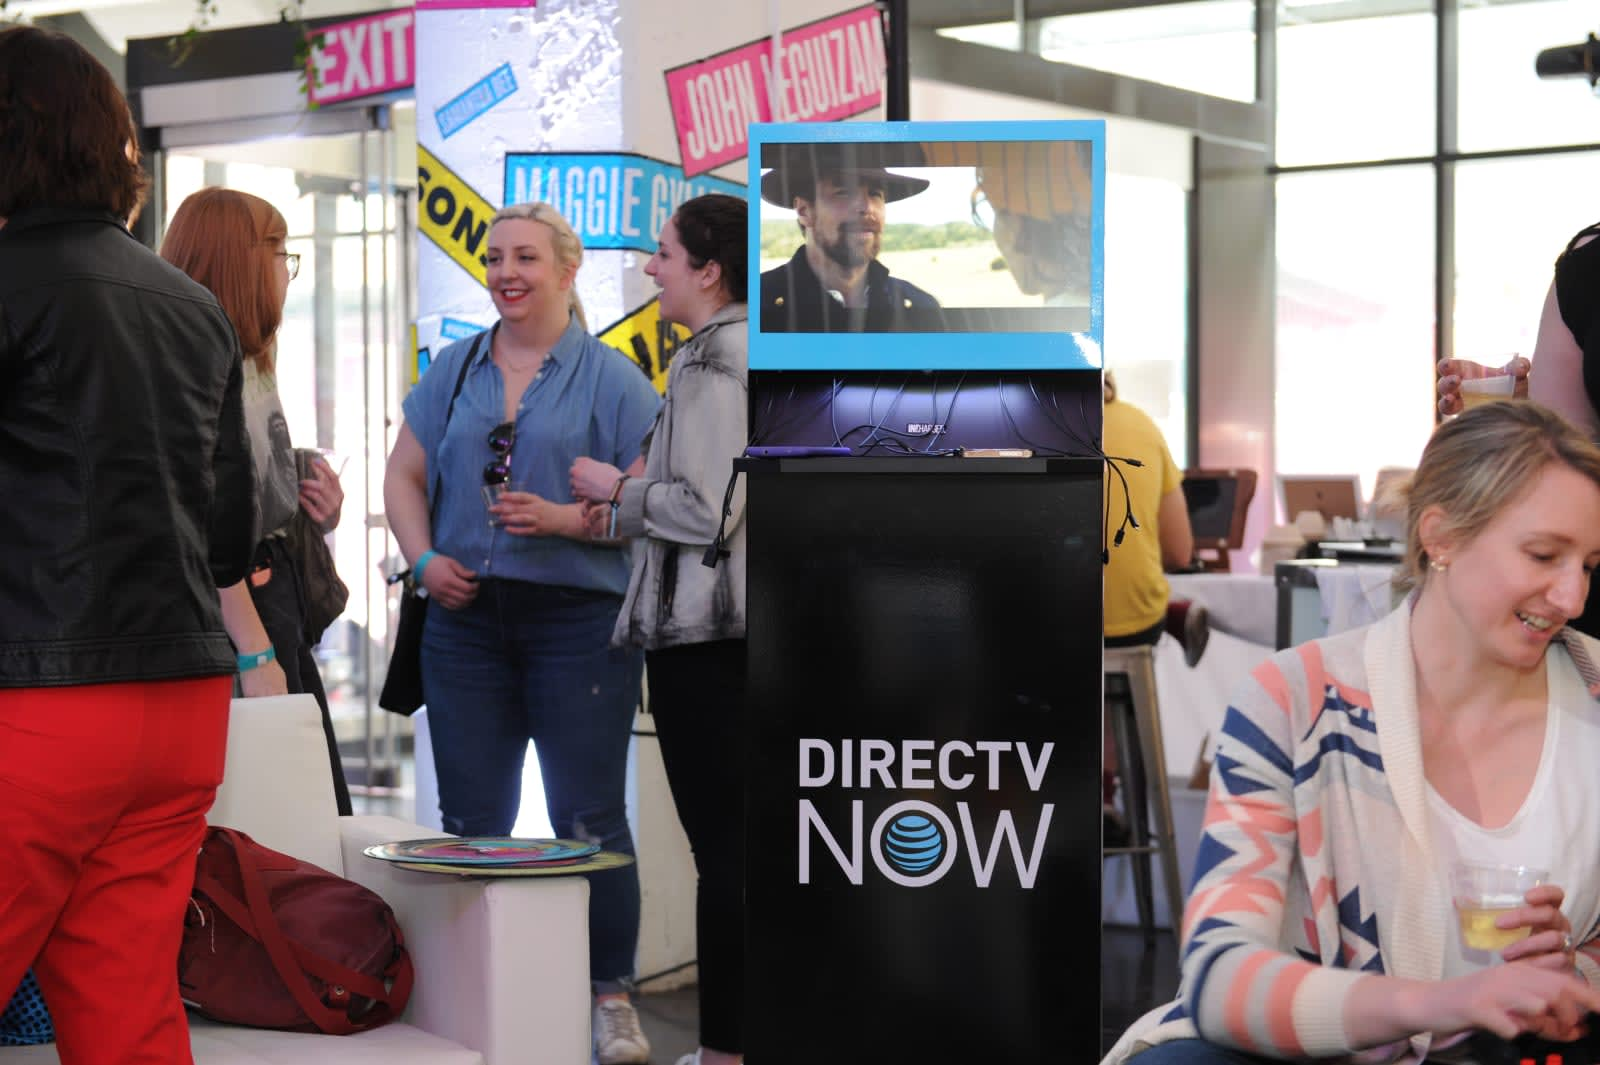 AT&T managers encouraged unethical DirecTV Now sales pitches